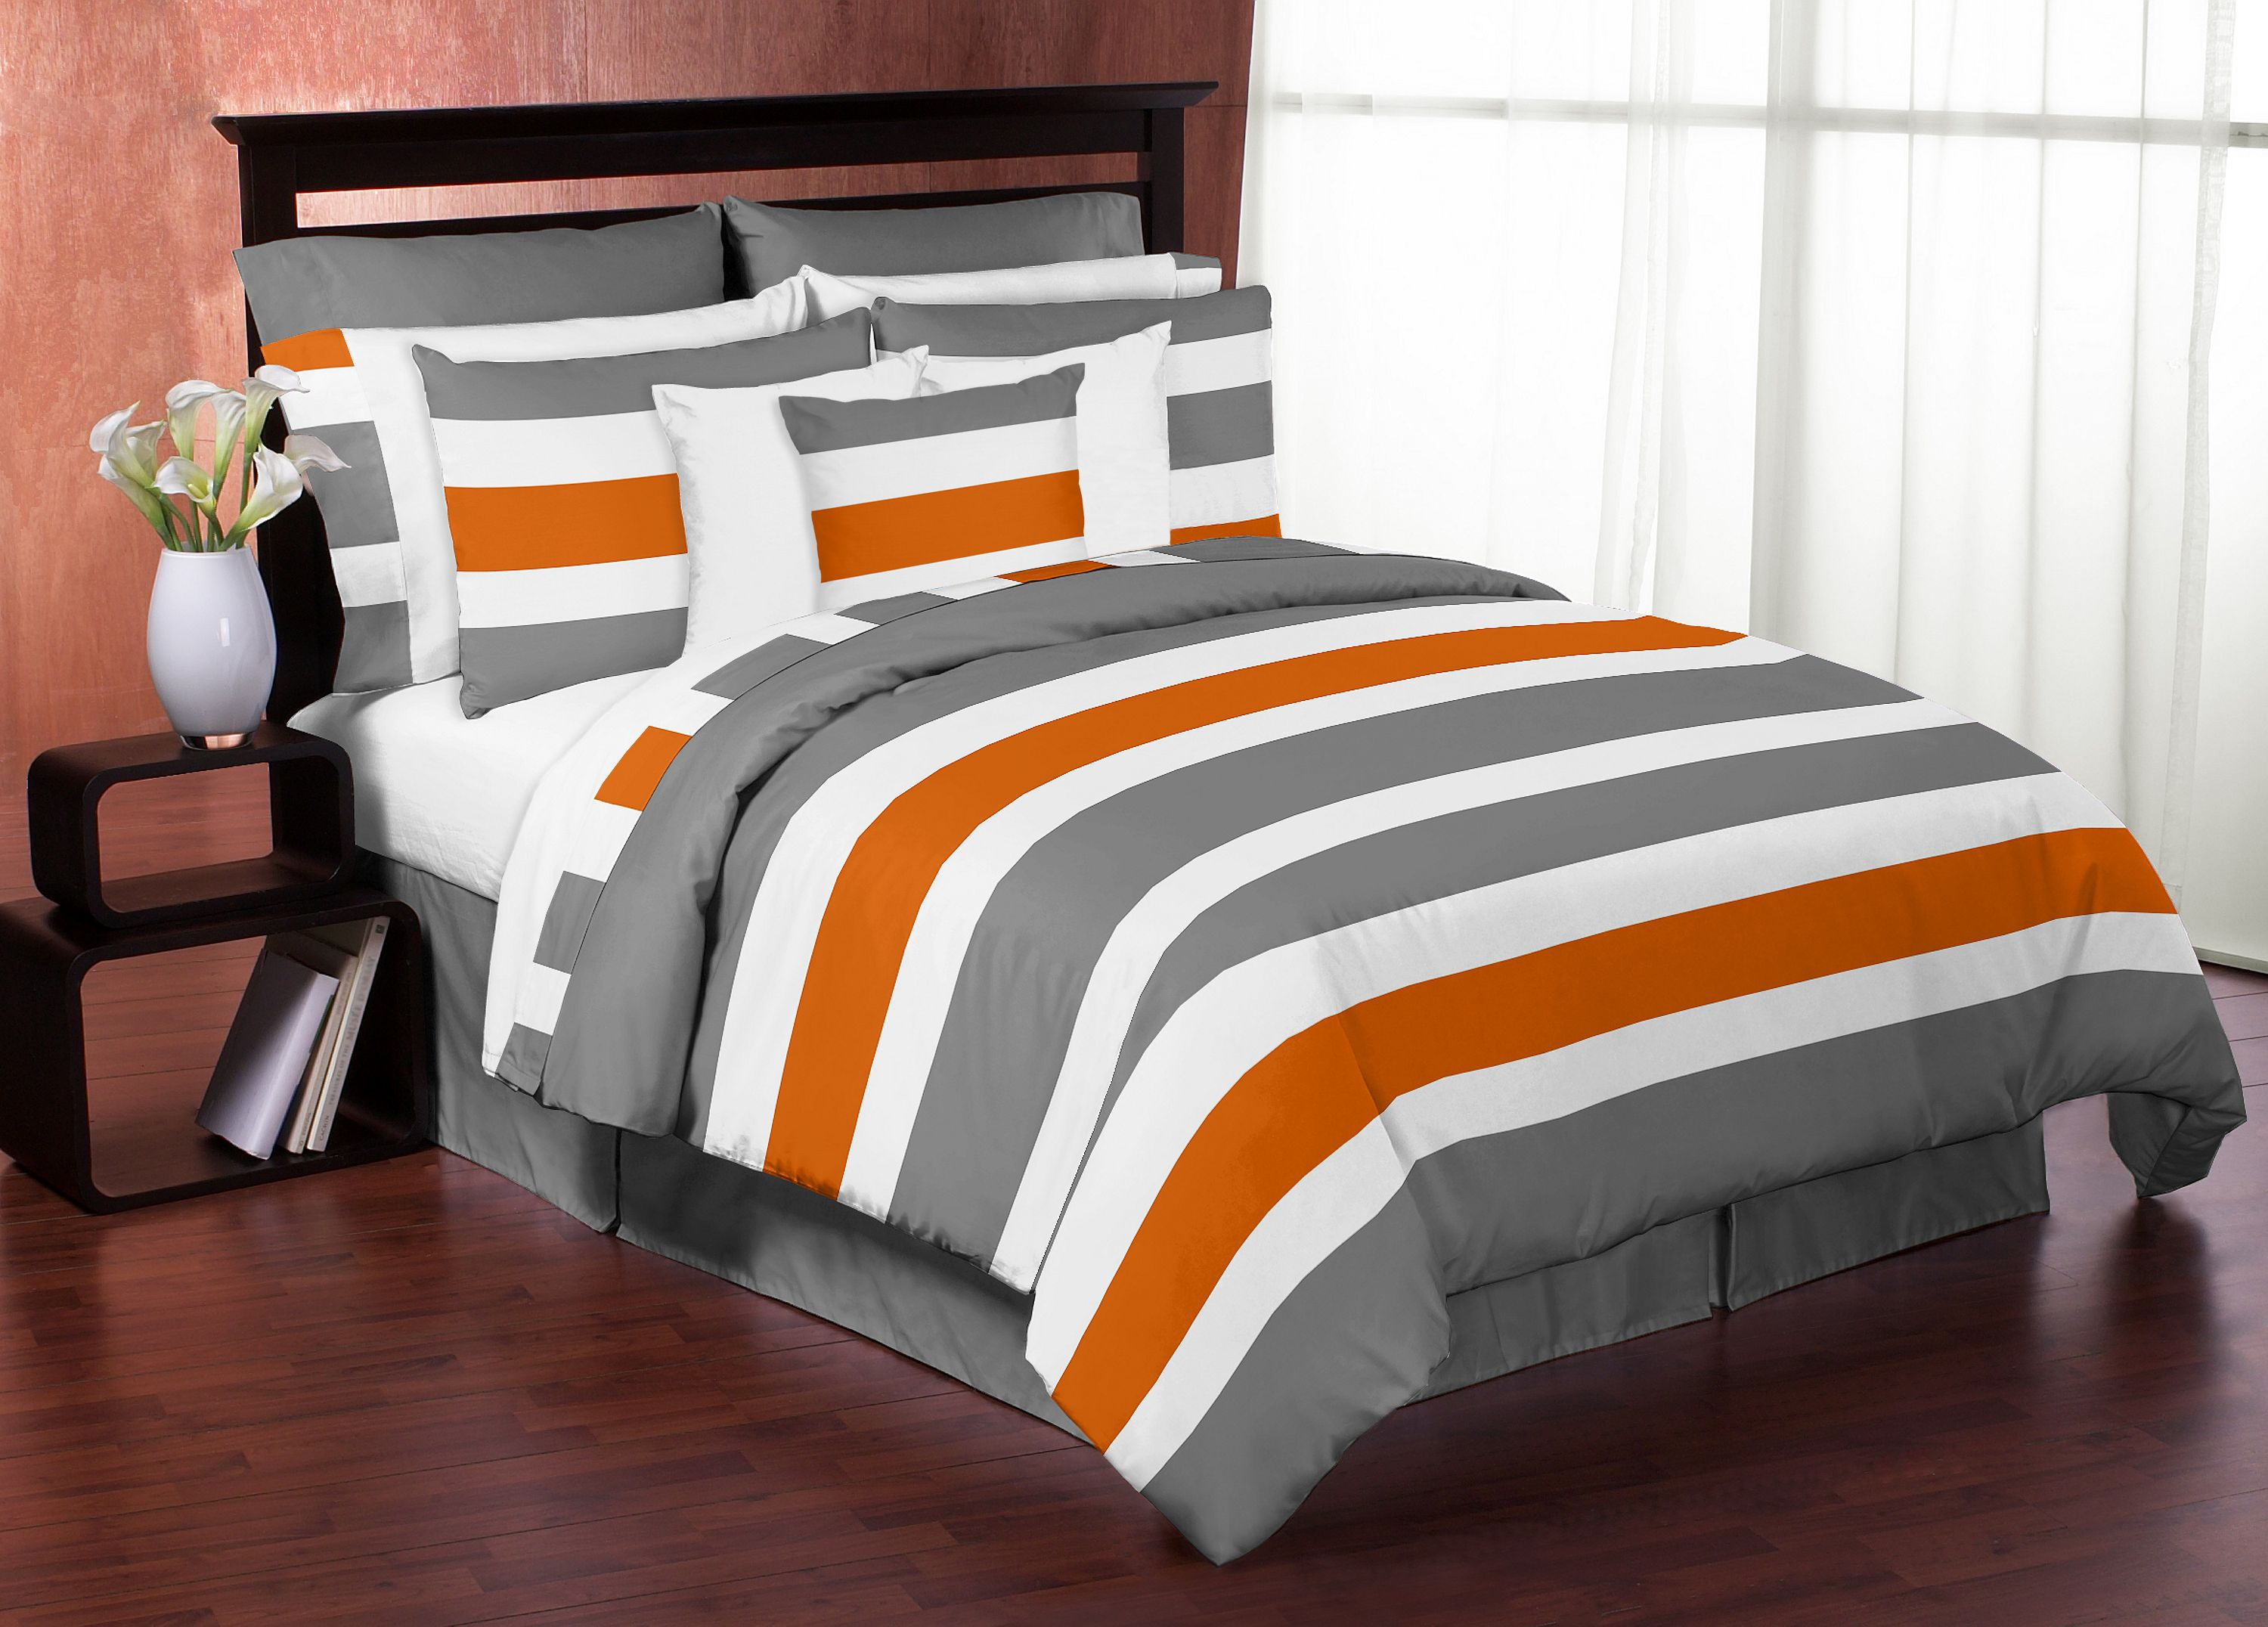 orange gold california unbelievable king bedding single white full goldng pink images black comforter and sets beddingetsingle jacana jacquard phenomenal crib chocolate set gripping twin